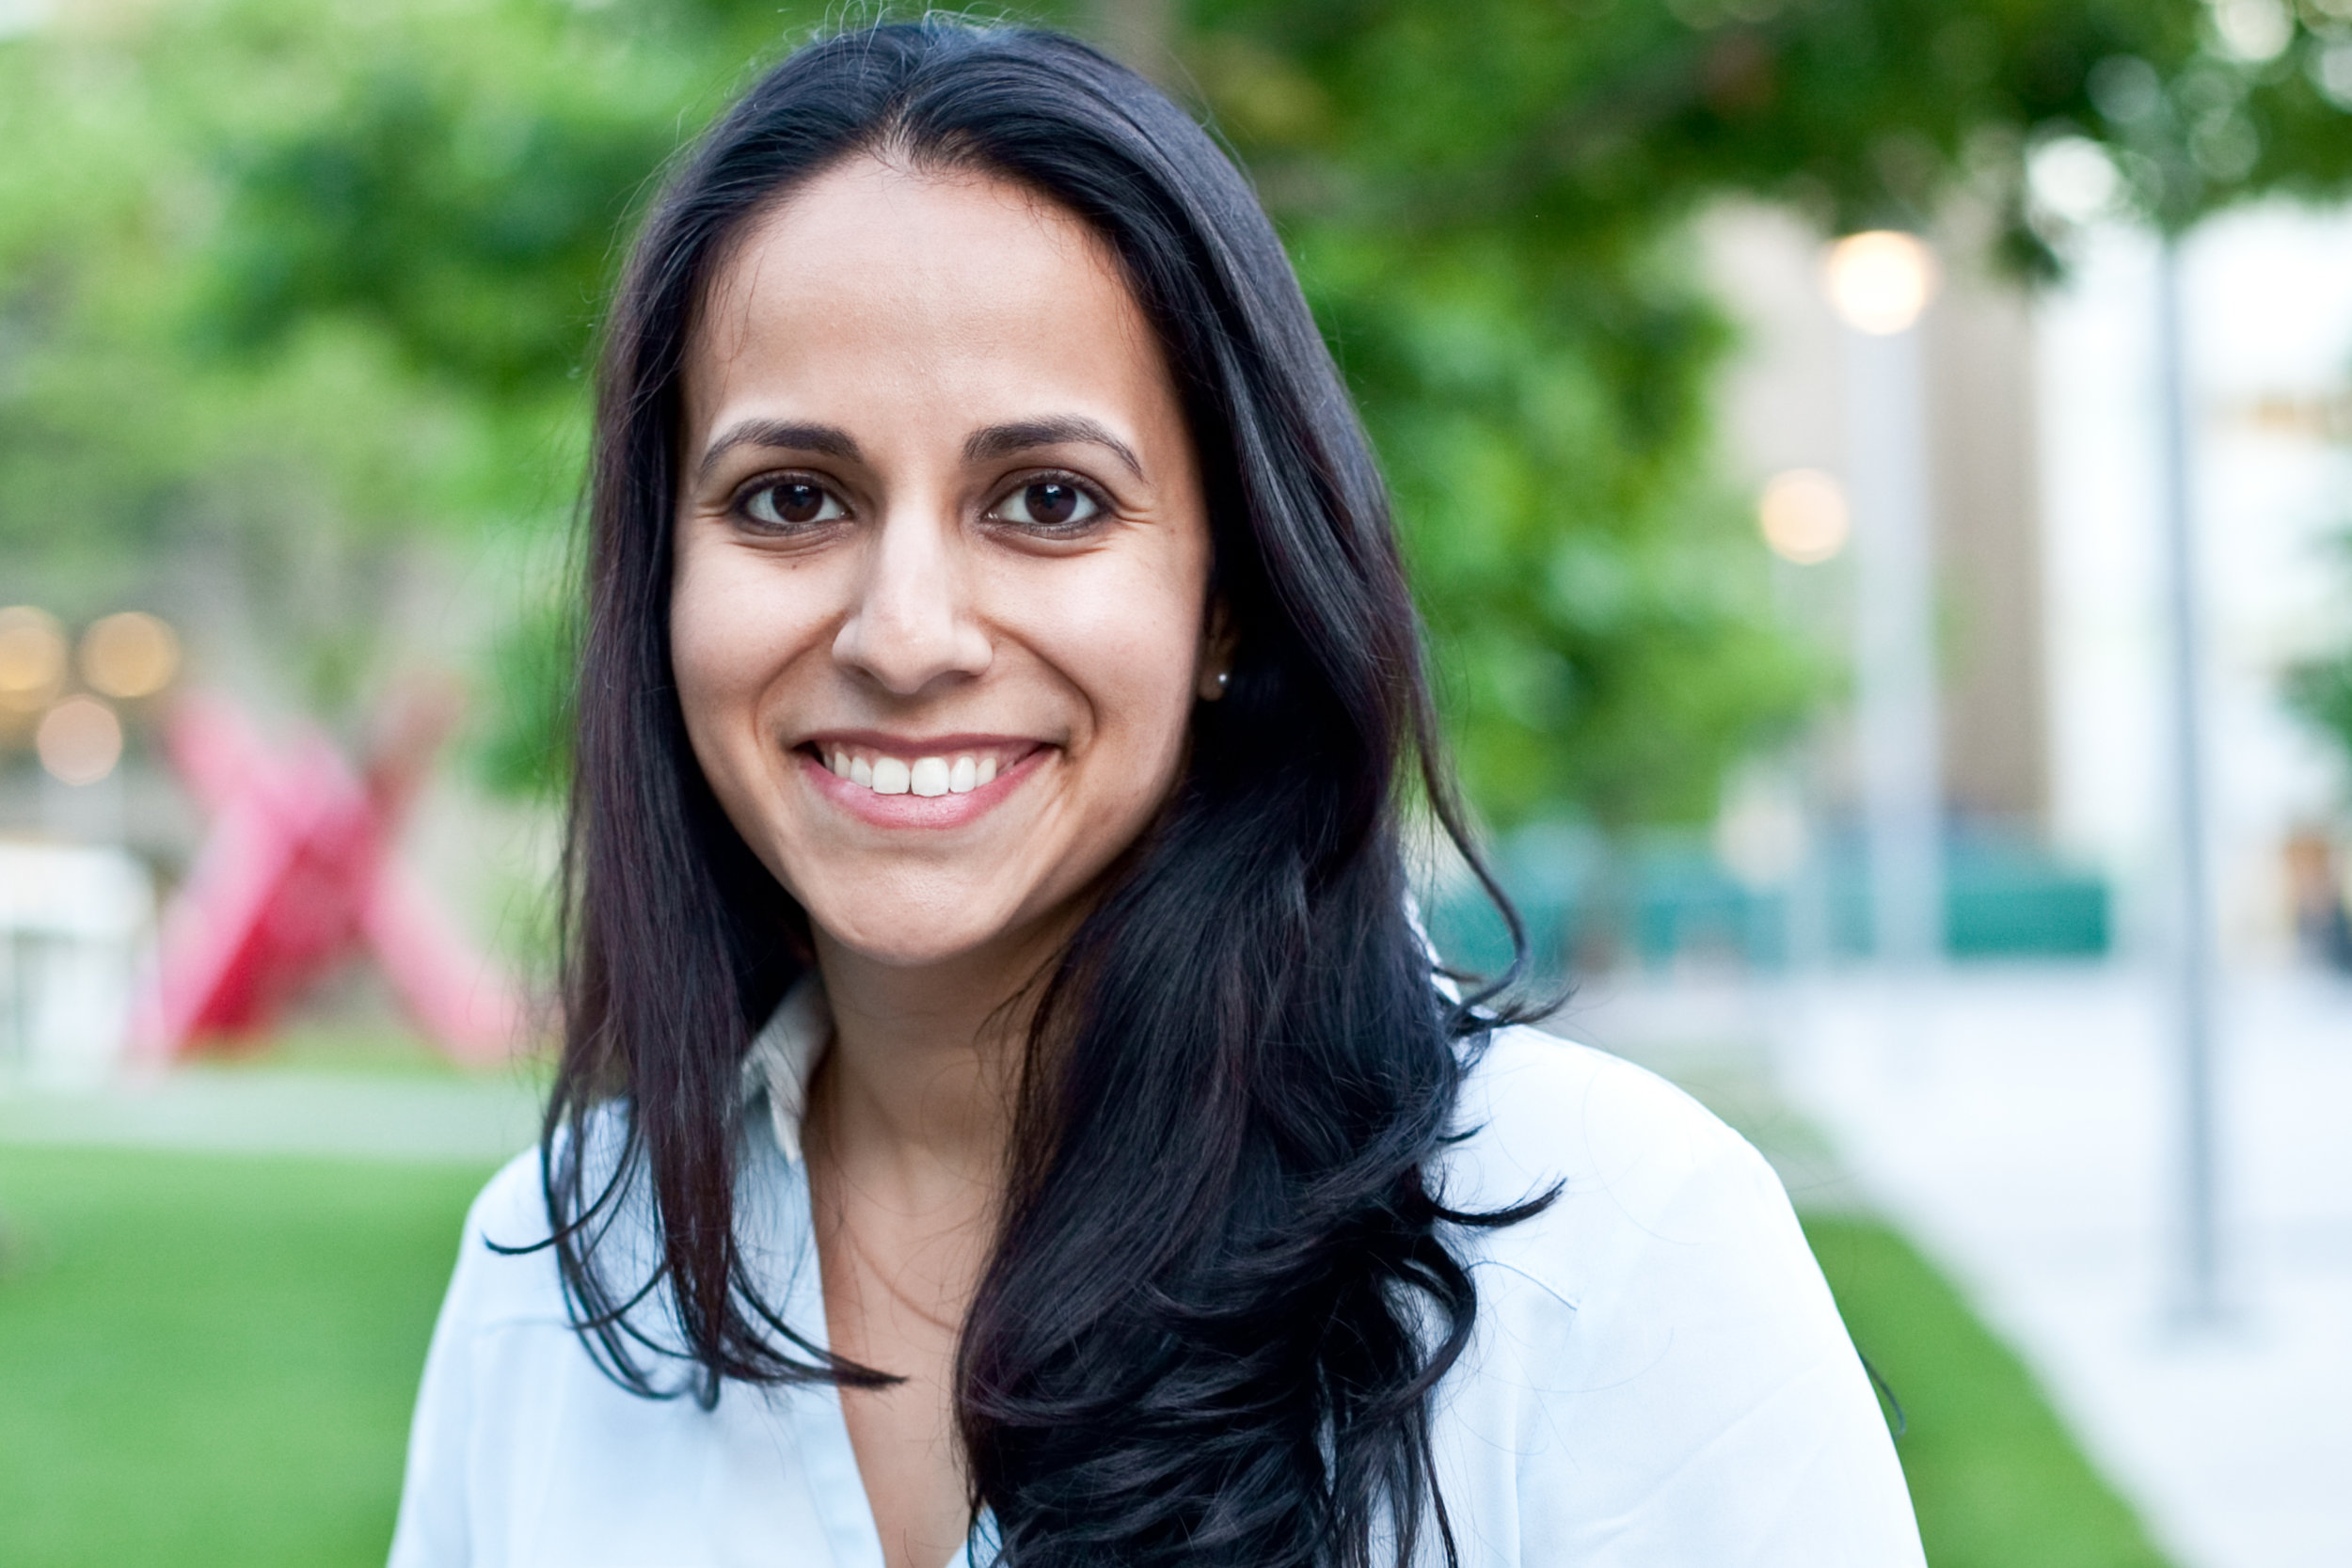 Building the Internet of Value - How Neha Narula and the MIT Digital Currency Initiative are helping innovate a new financial system